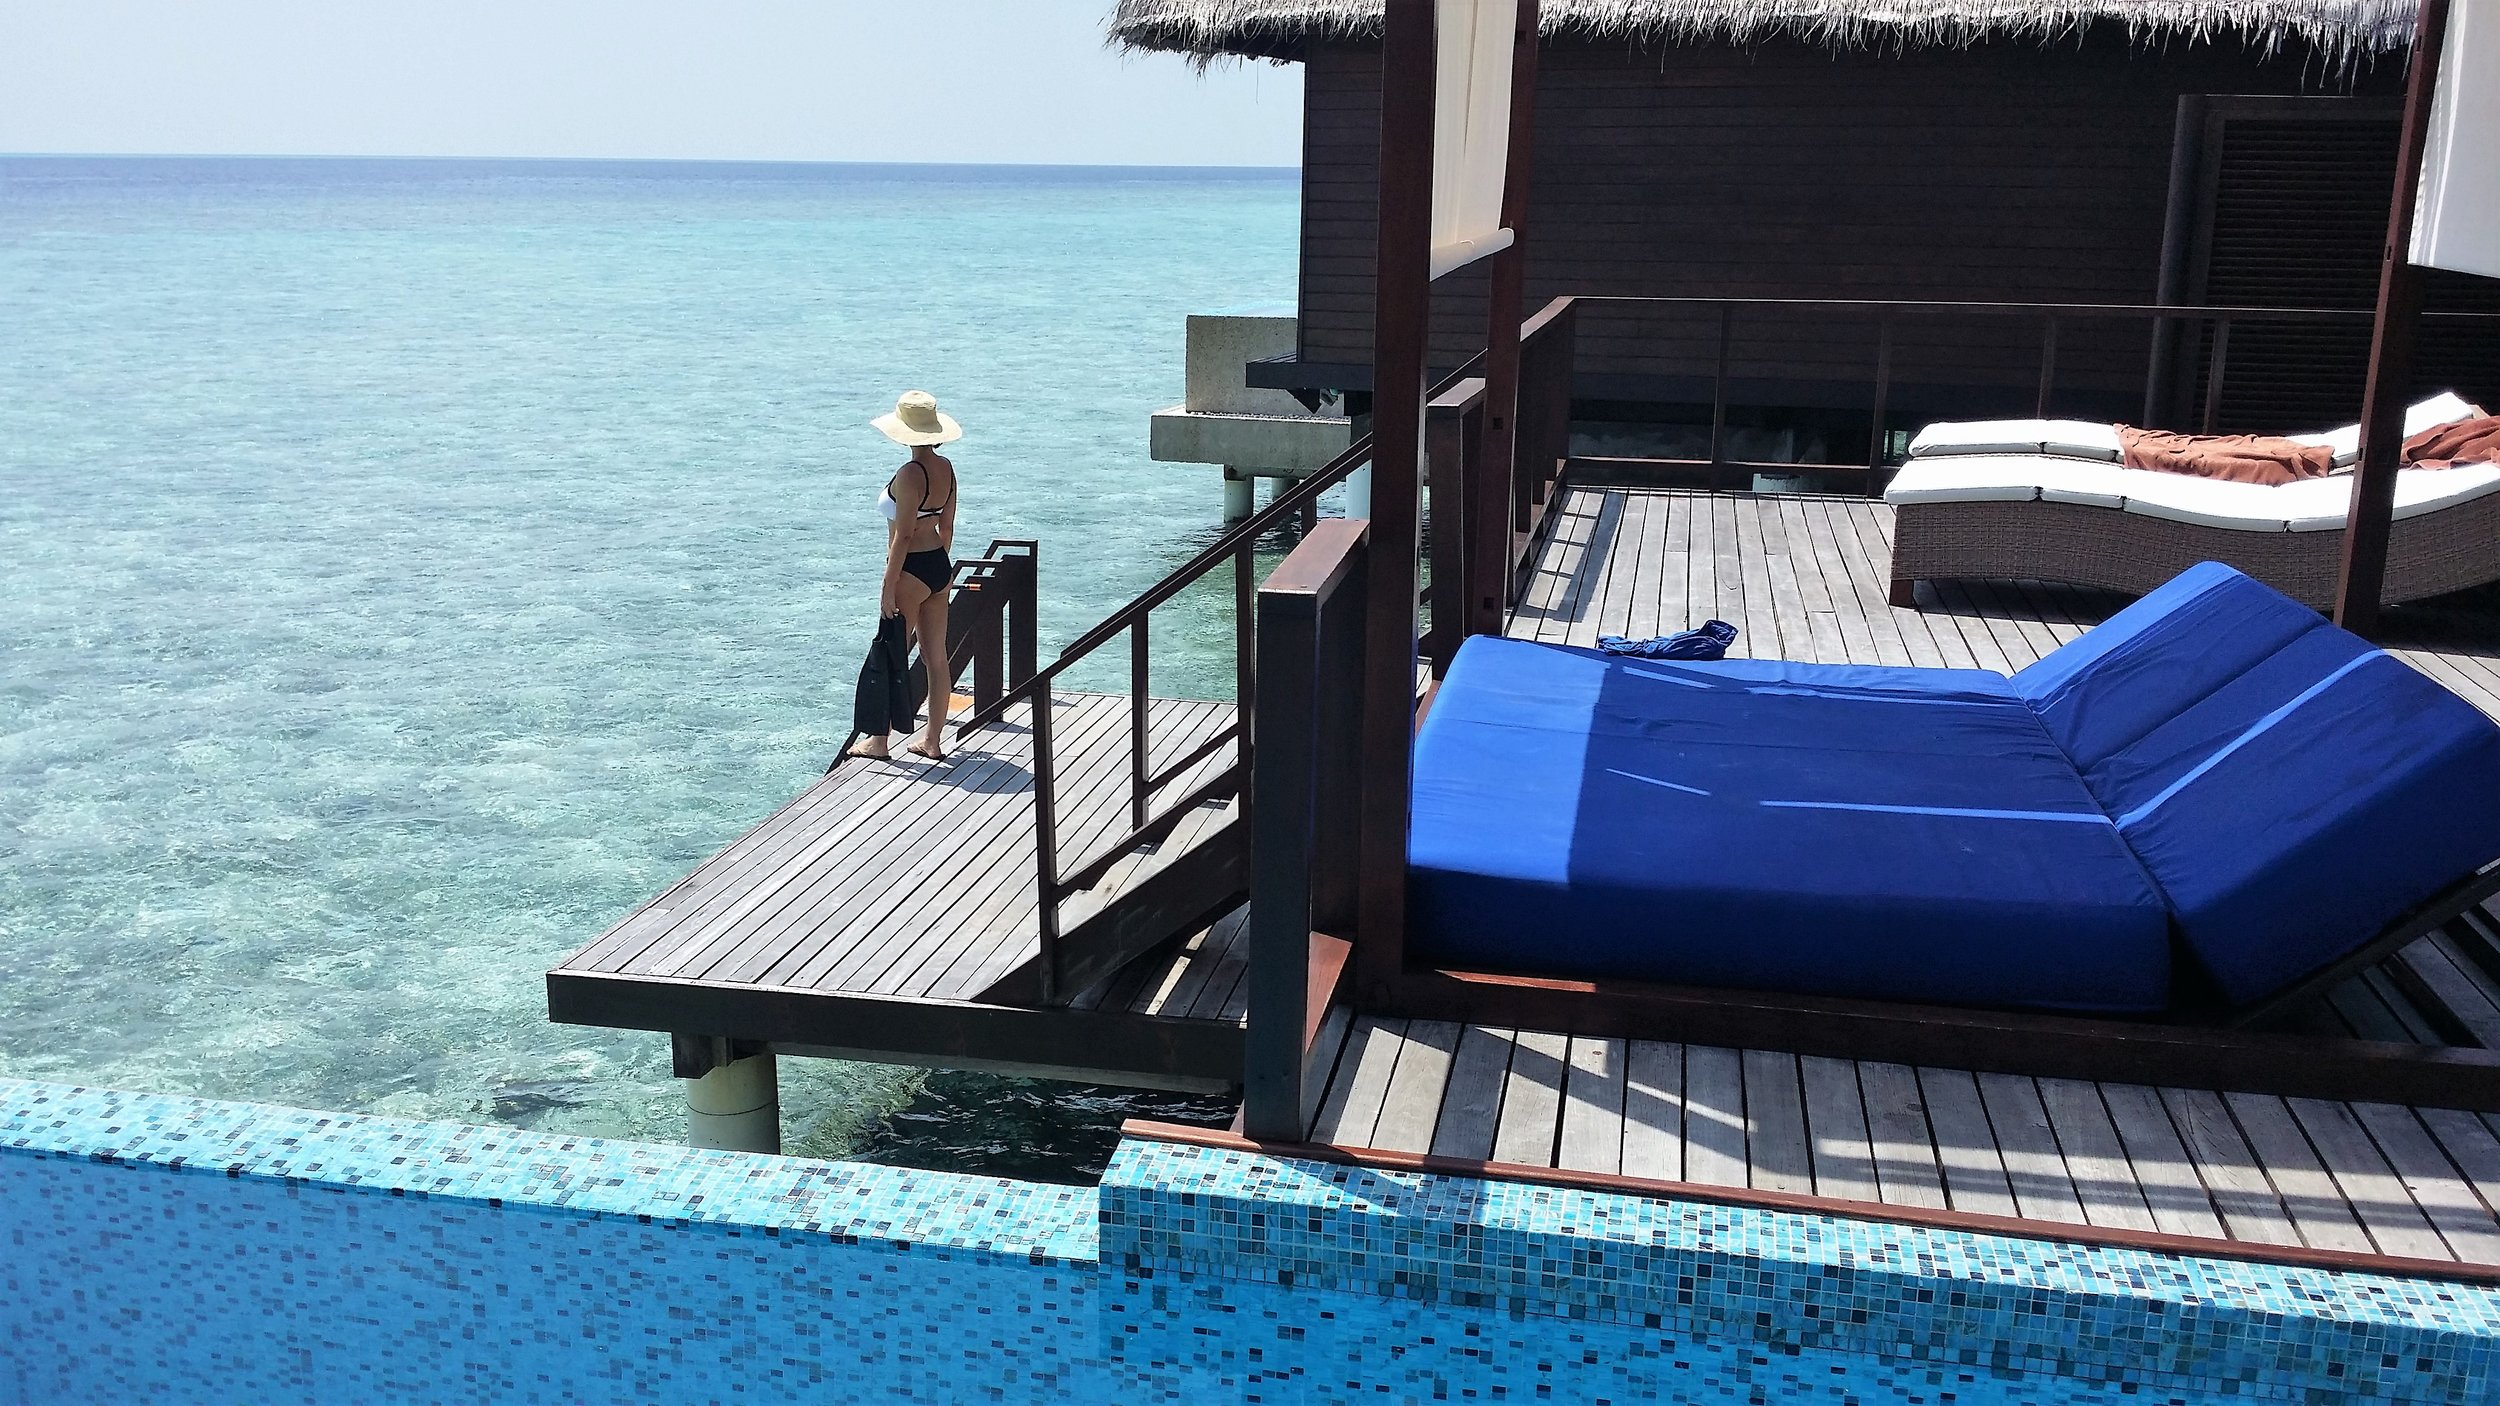 Coco Residence Coco Bodu Hithi 2016